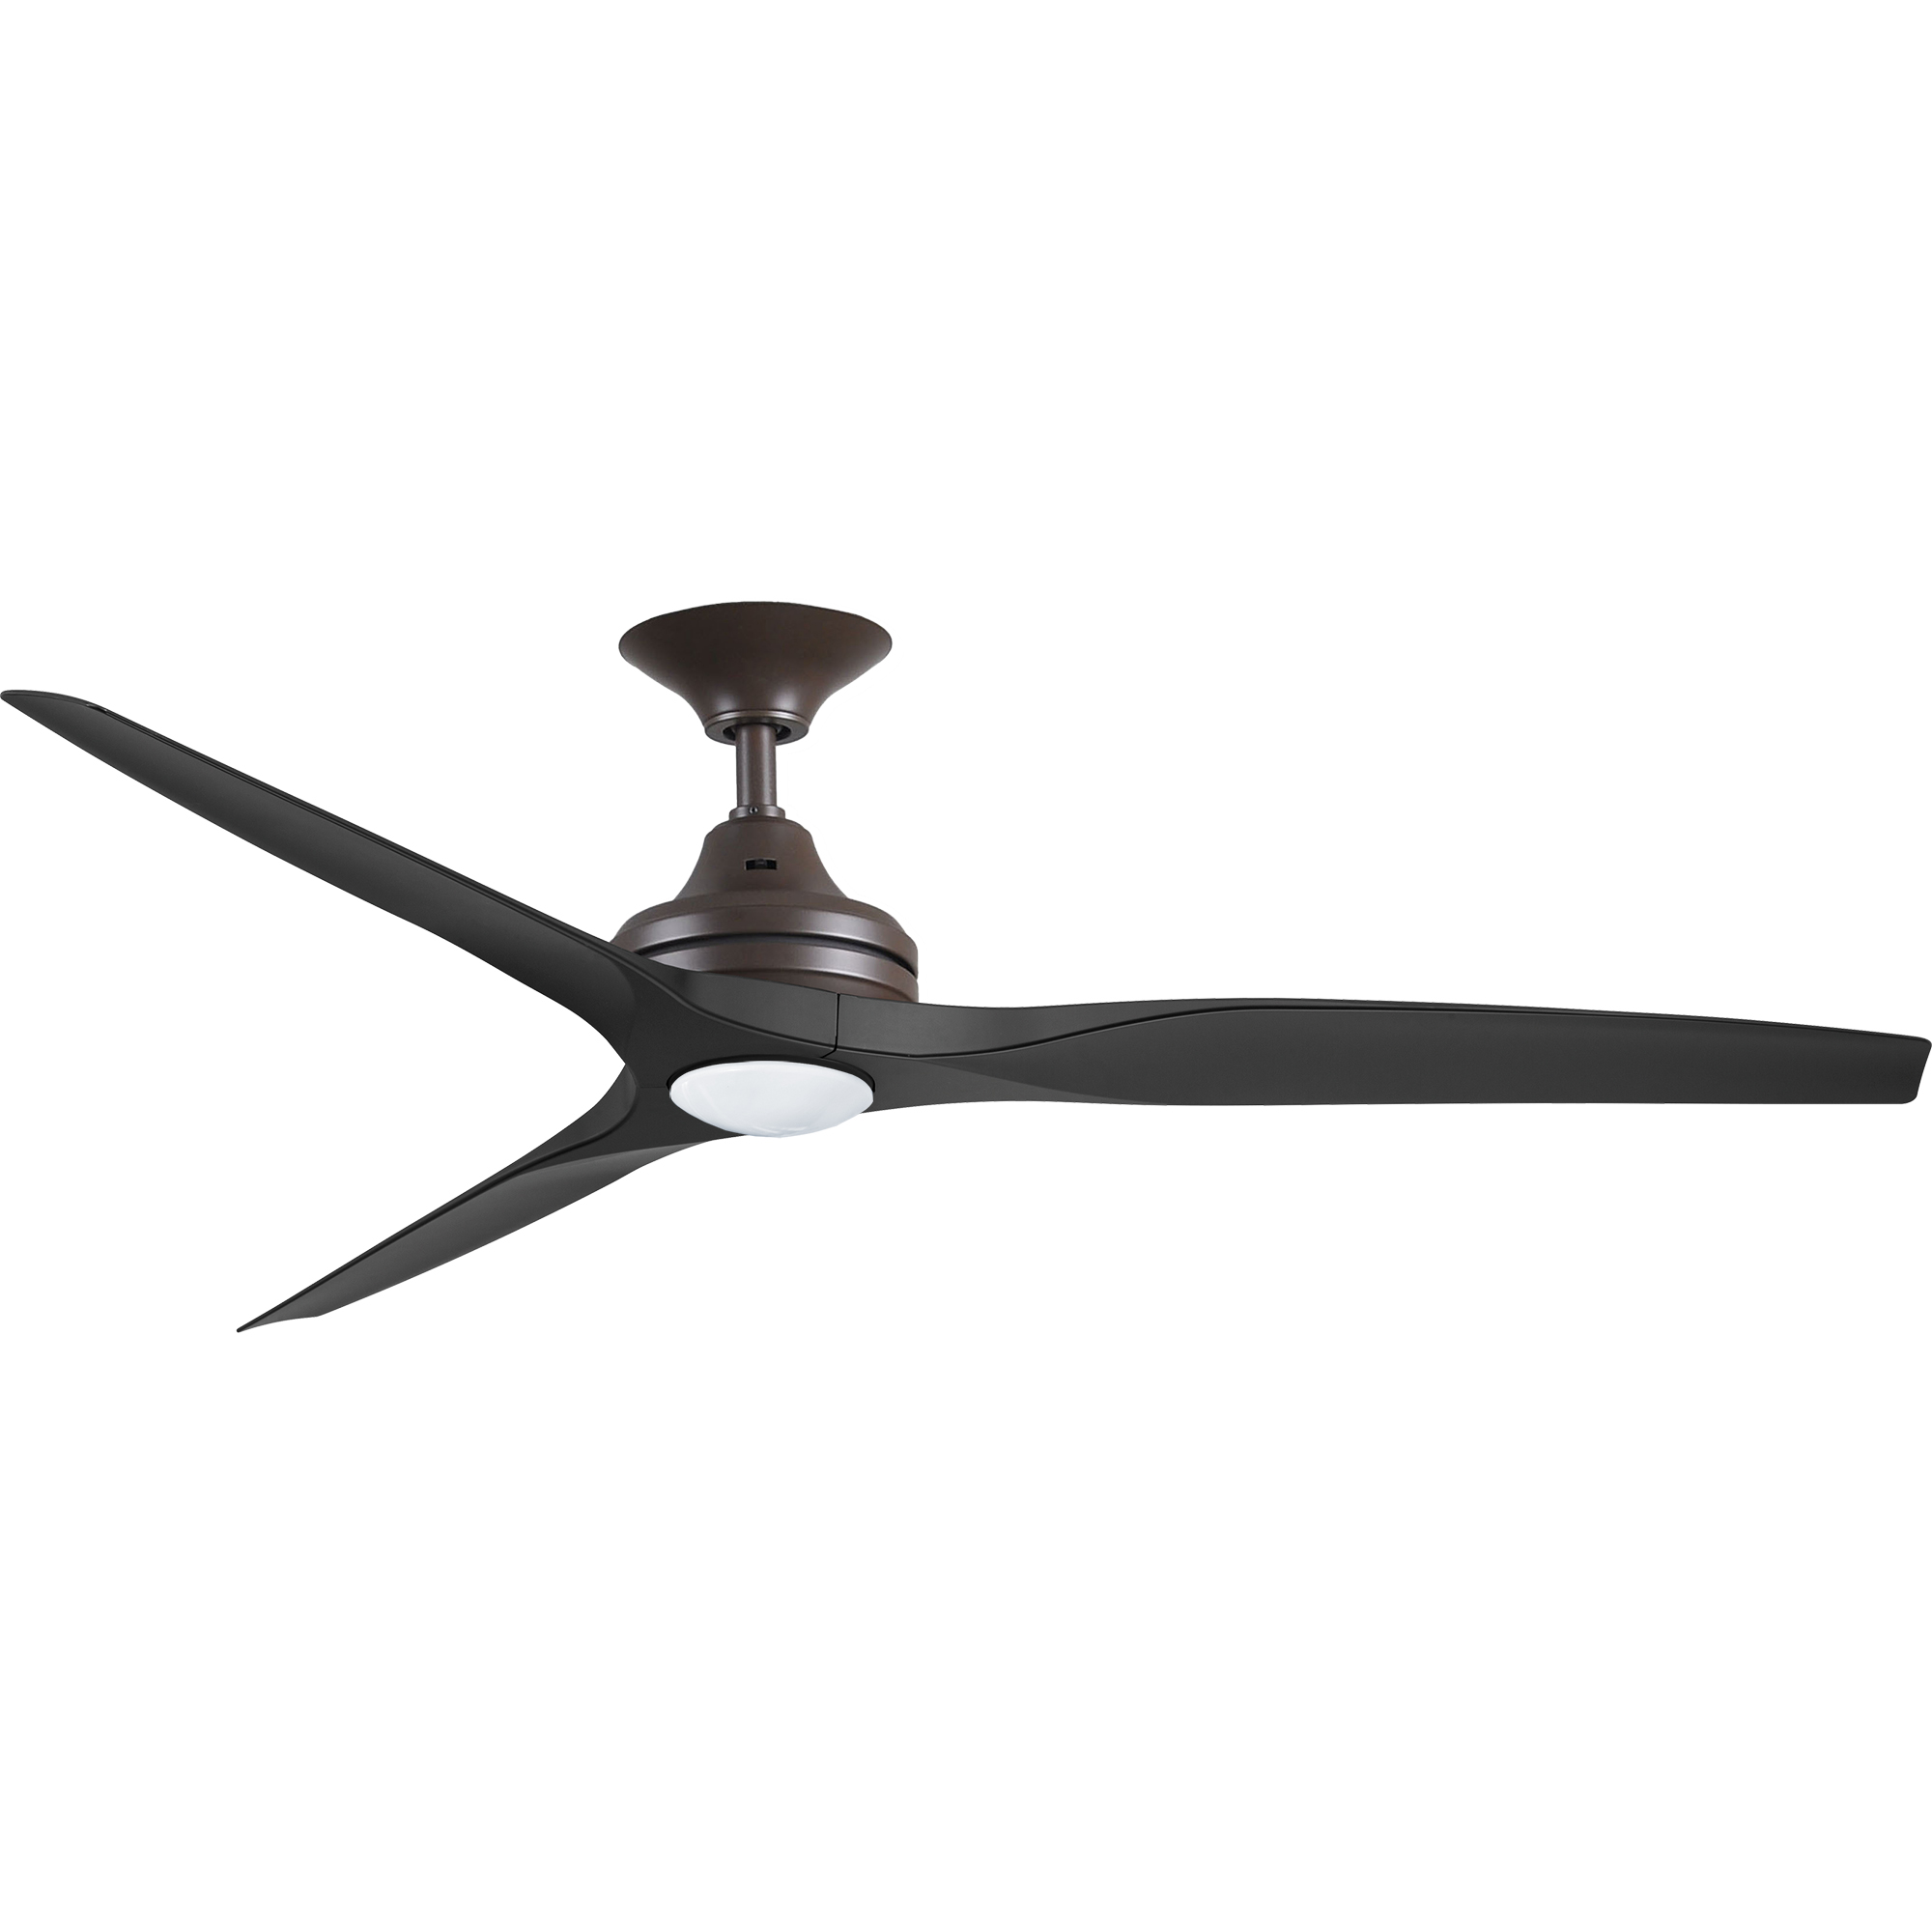 """60"""" Spitfire ceiling fan in Oil-rubbed Bronze with Black polymer blades and LED Light Kit"""